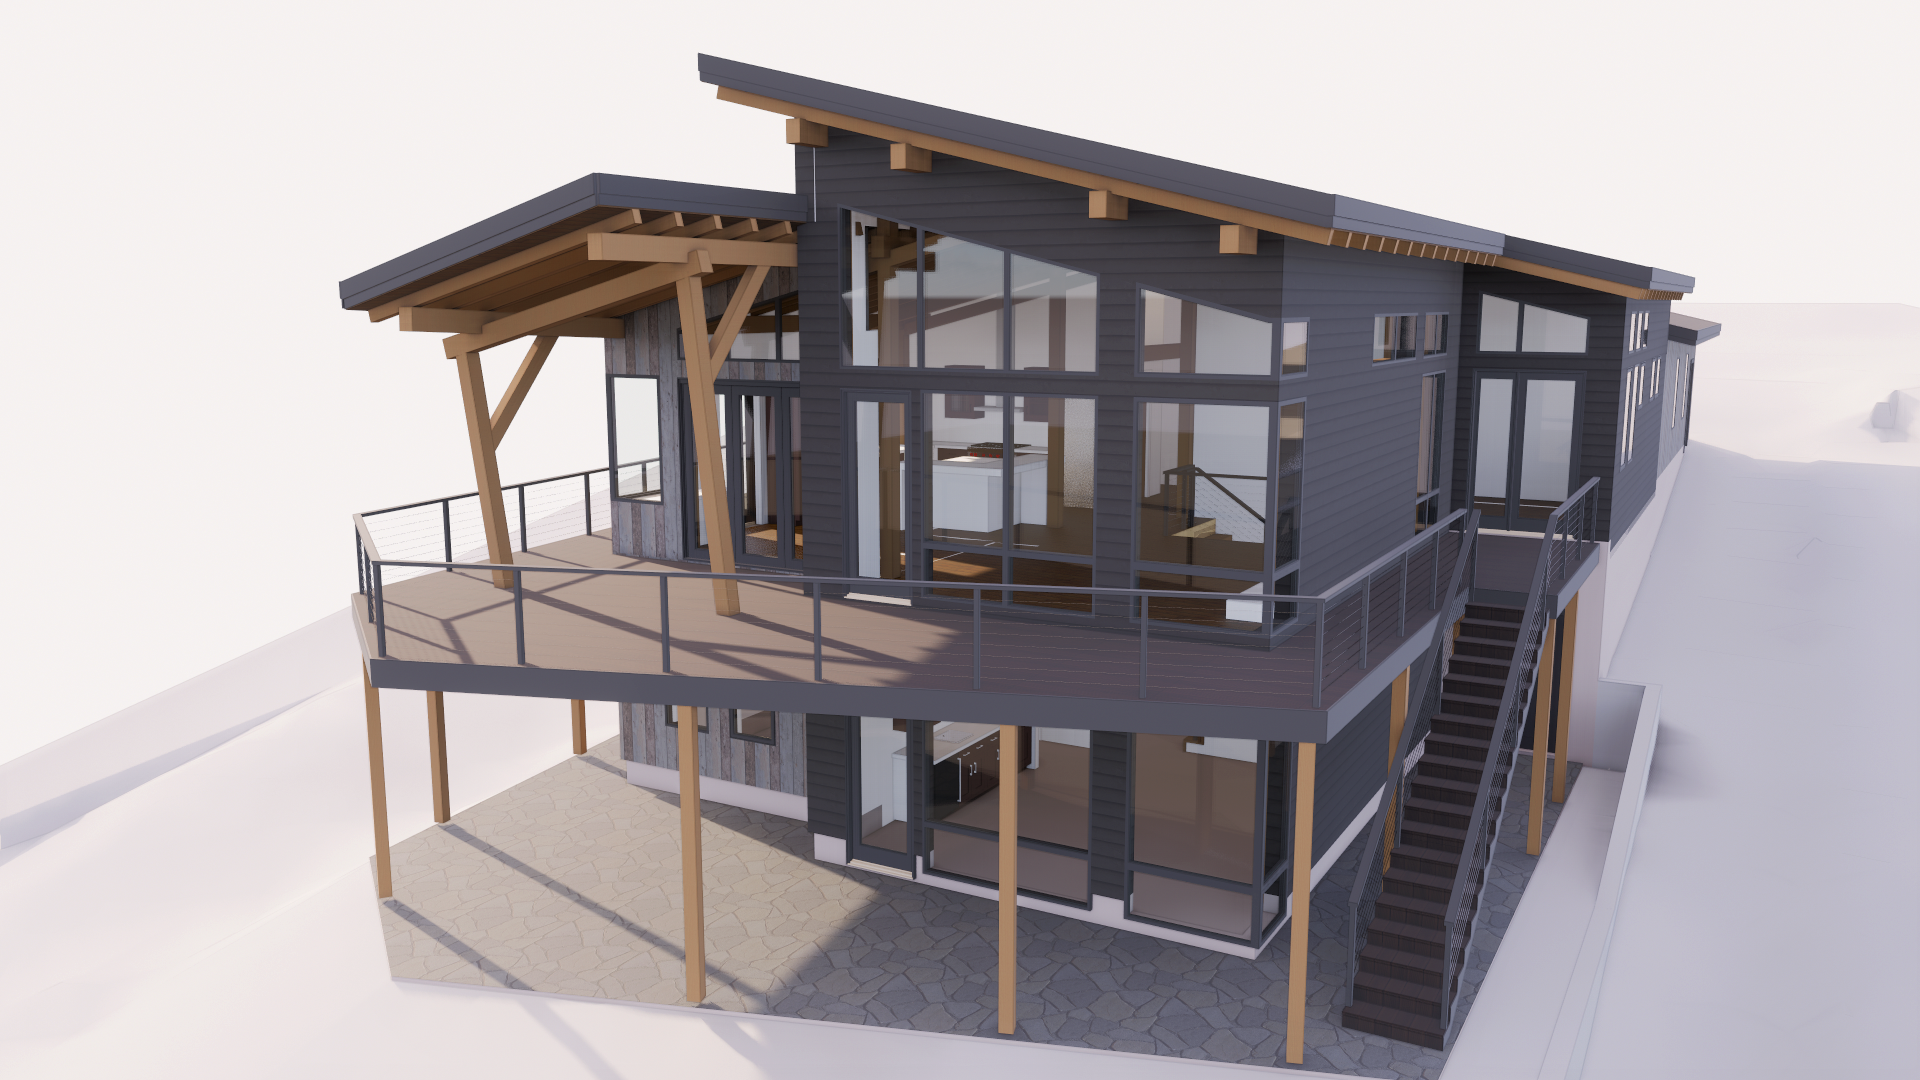 Rendering of timber frame exterior of lake home design project.